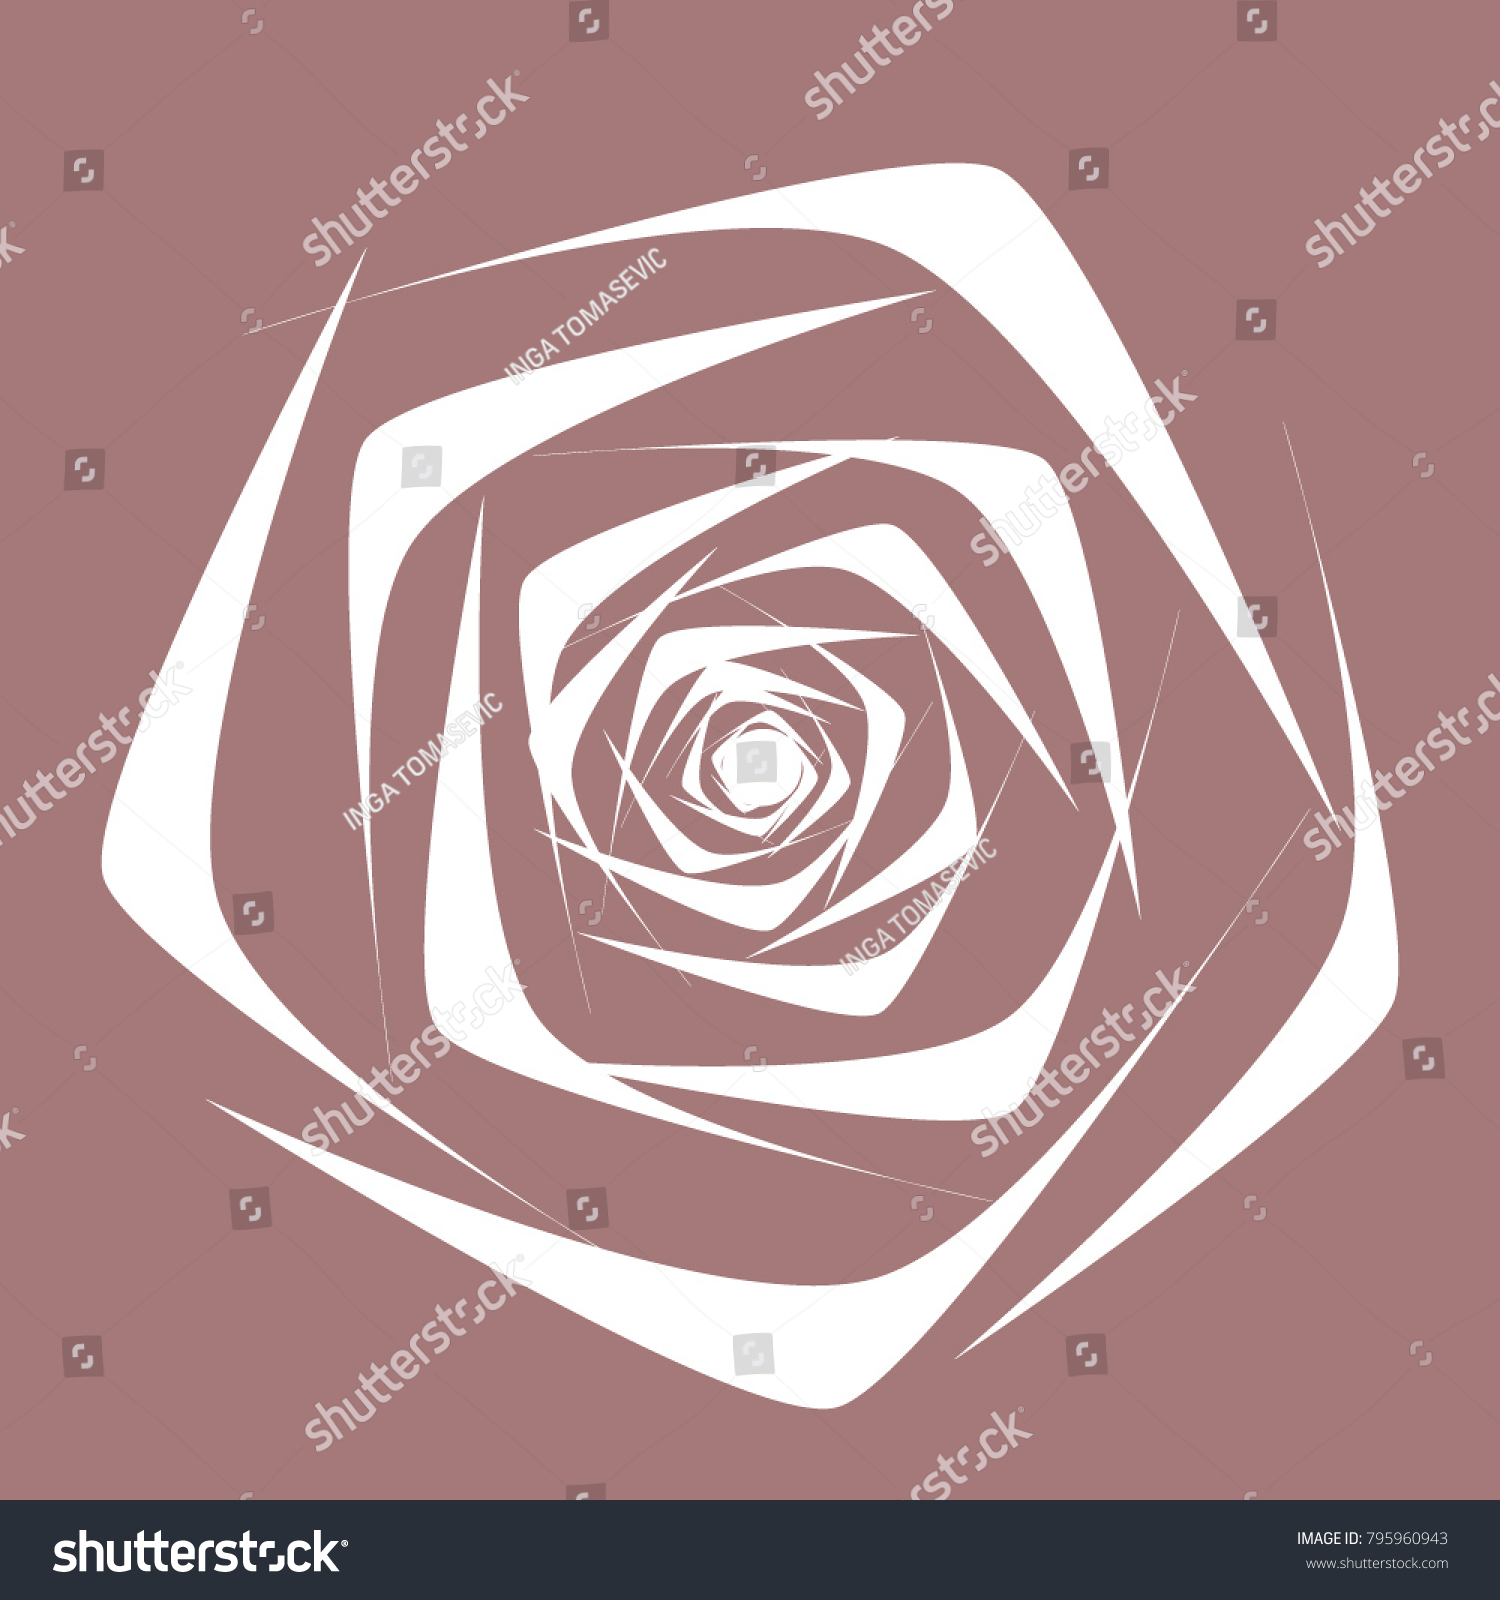 Beautiful white rose ethnic style textile stock vector 795960943 beautiful white rose in ethnic style for textile tile paper card banner buycottarizona Choice Image